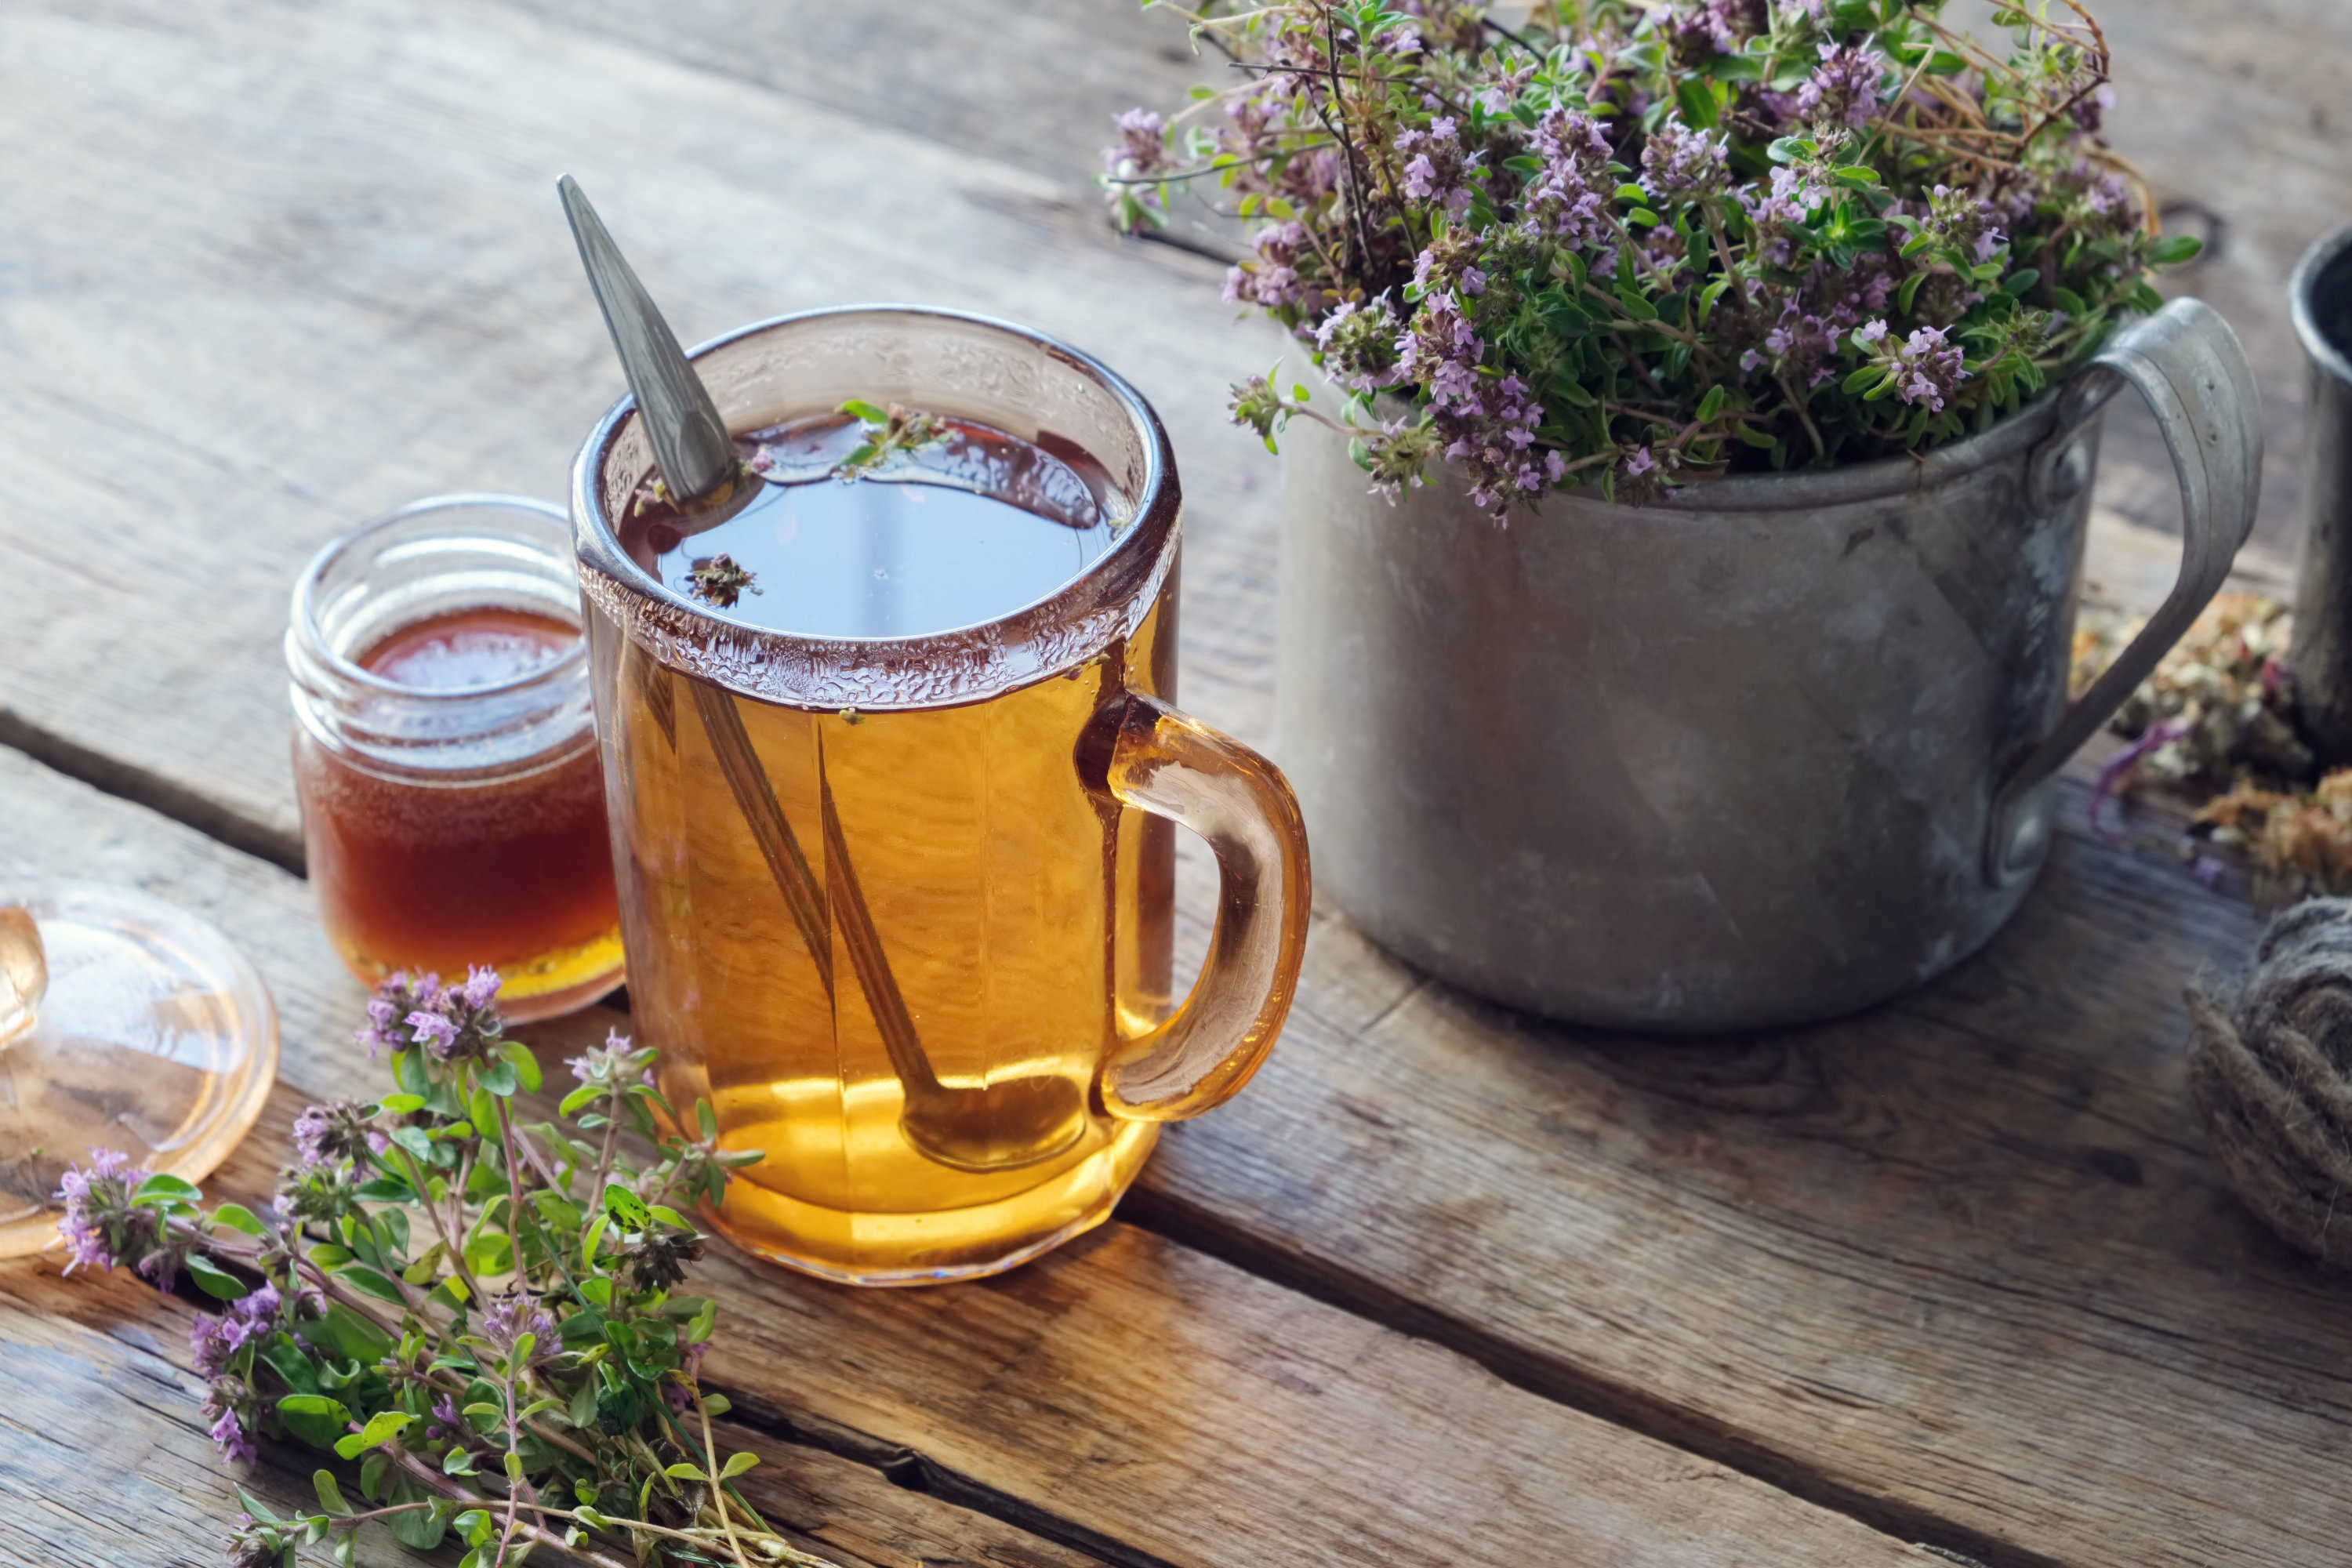 Honey is known as one of the oldest medicinal substances. (Shutterstock Photo)